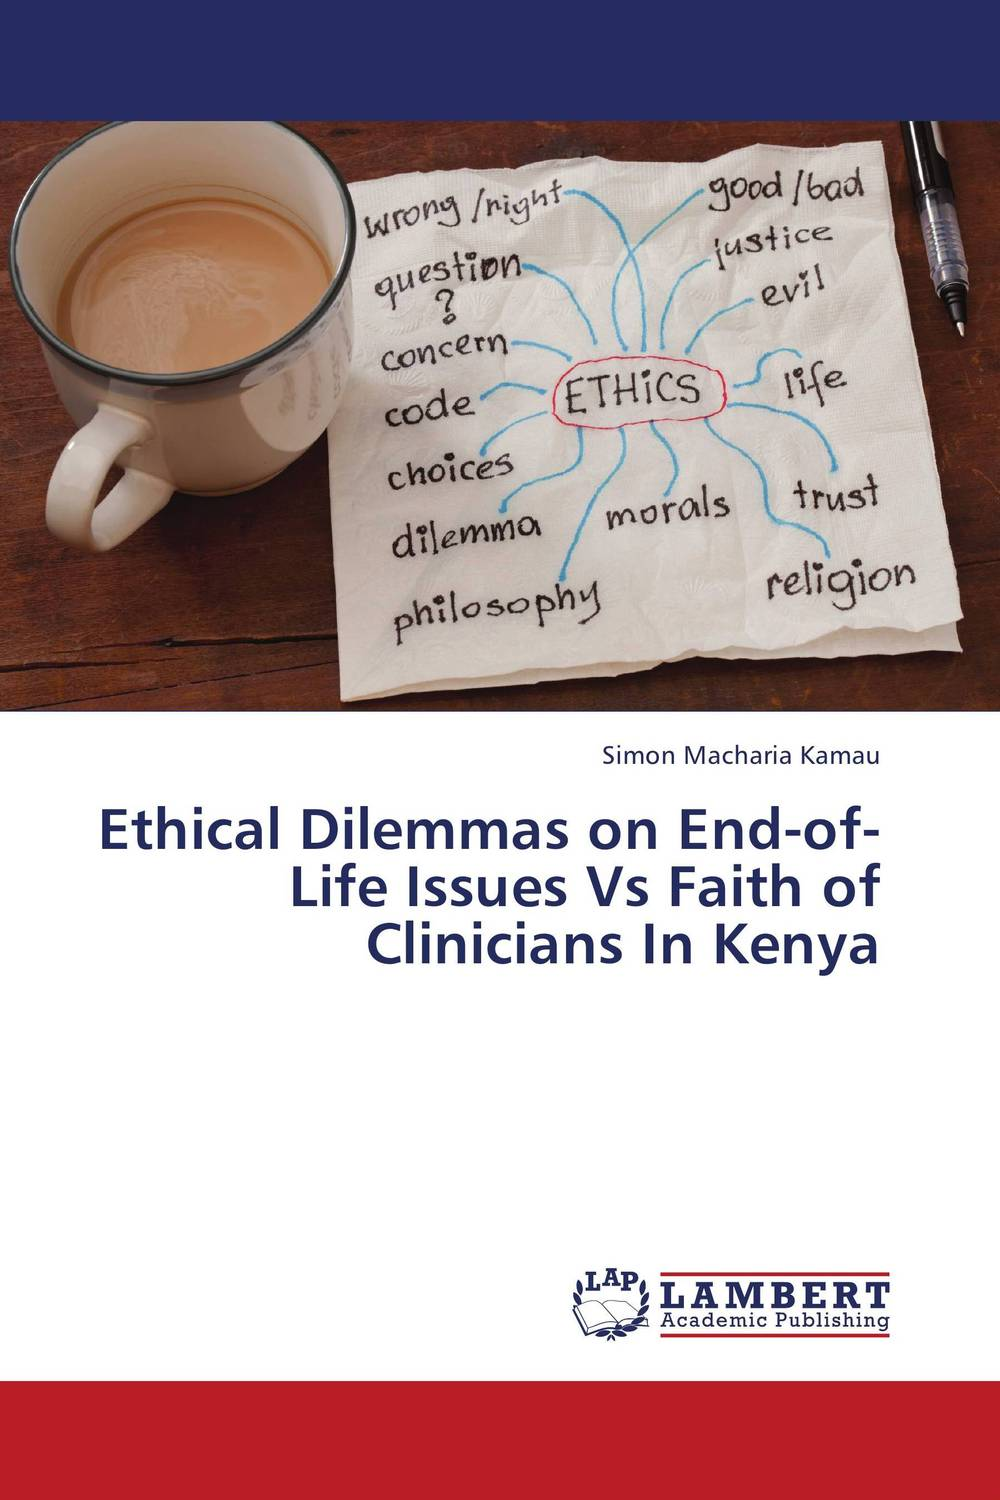 Ethical Dilemmas on End-of-Life Issues Vs Faith of Clinicians In Kenya